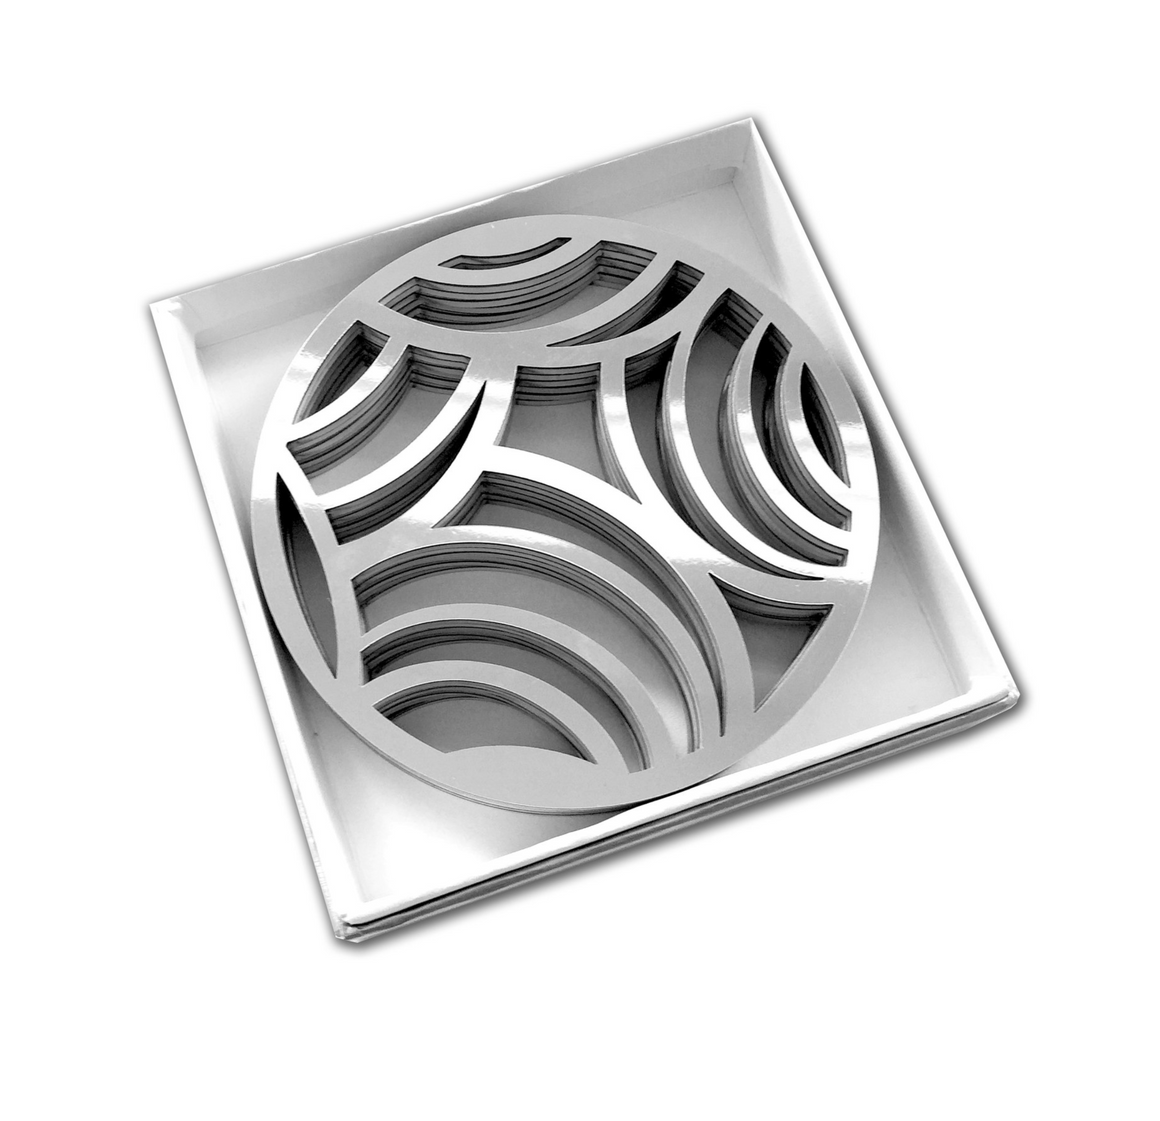 Silver Affinity Coasters - set of 6